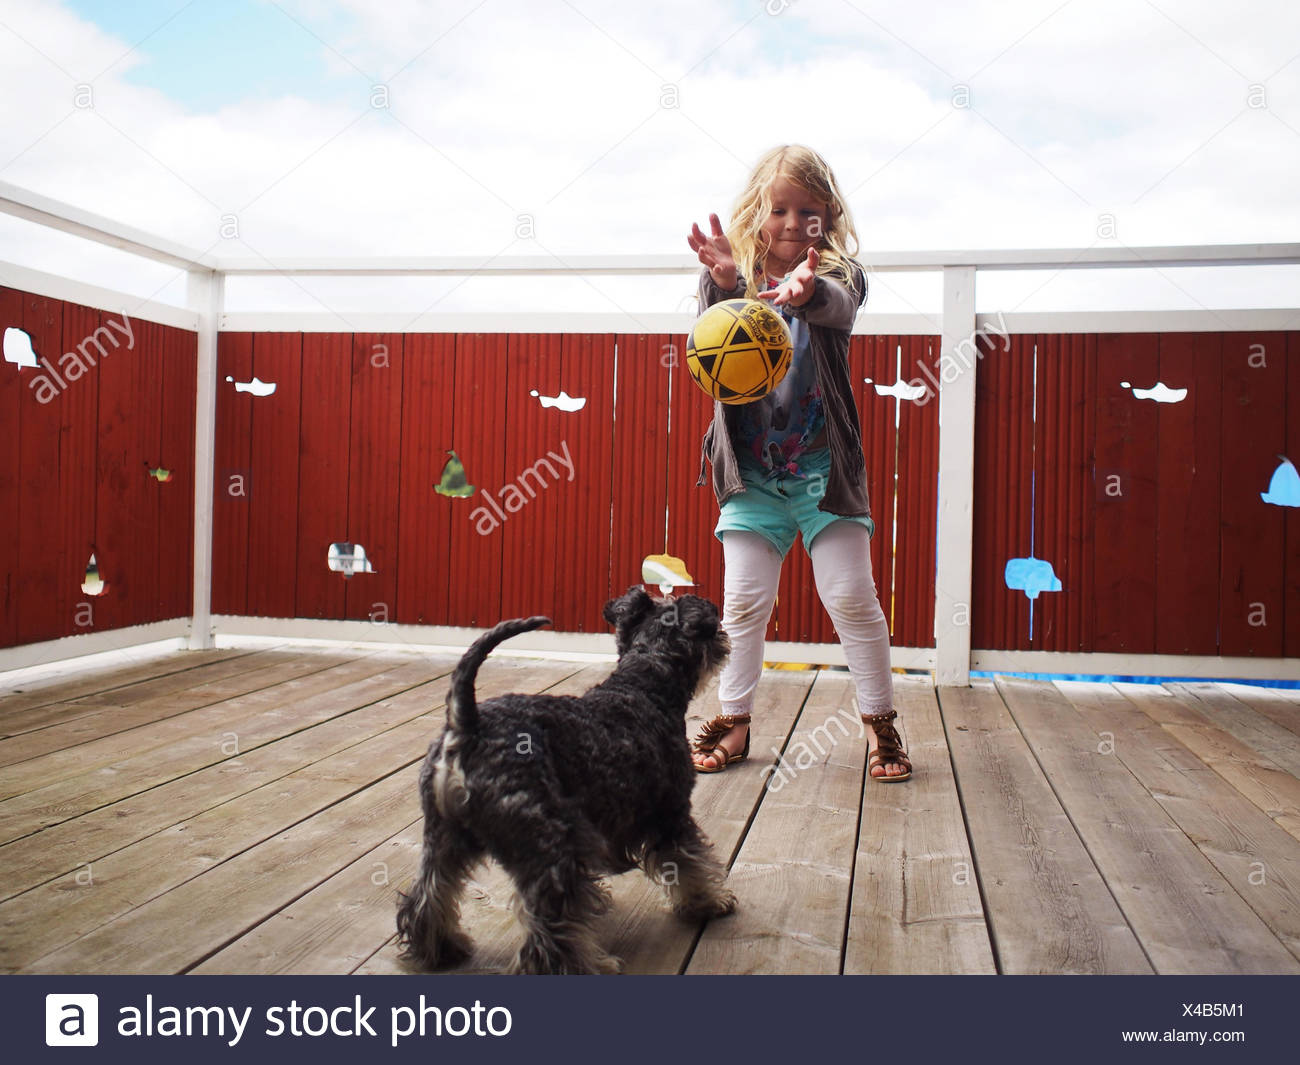 Young girl (6-7 years) playing with dog - Stock Image